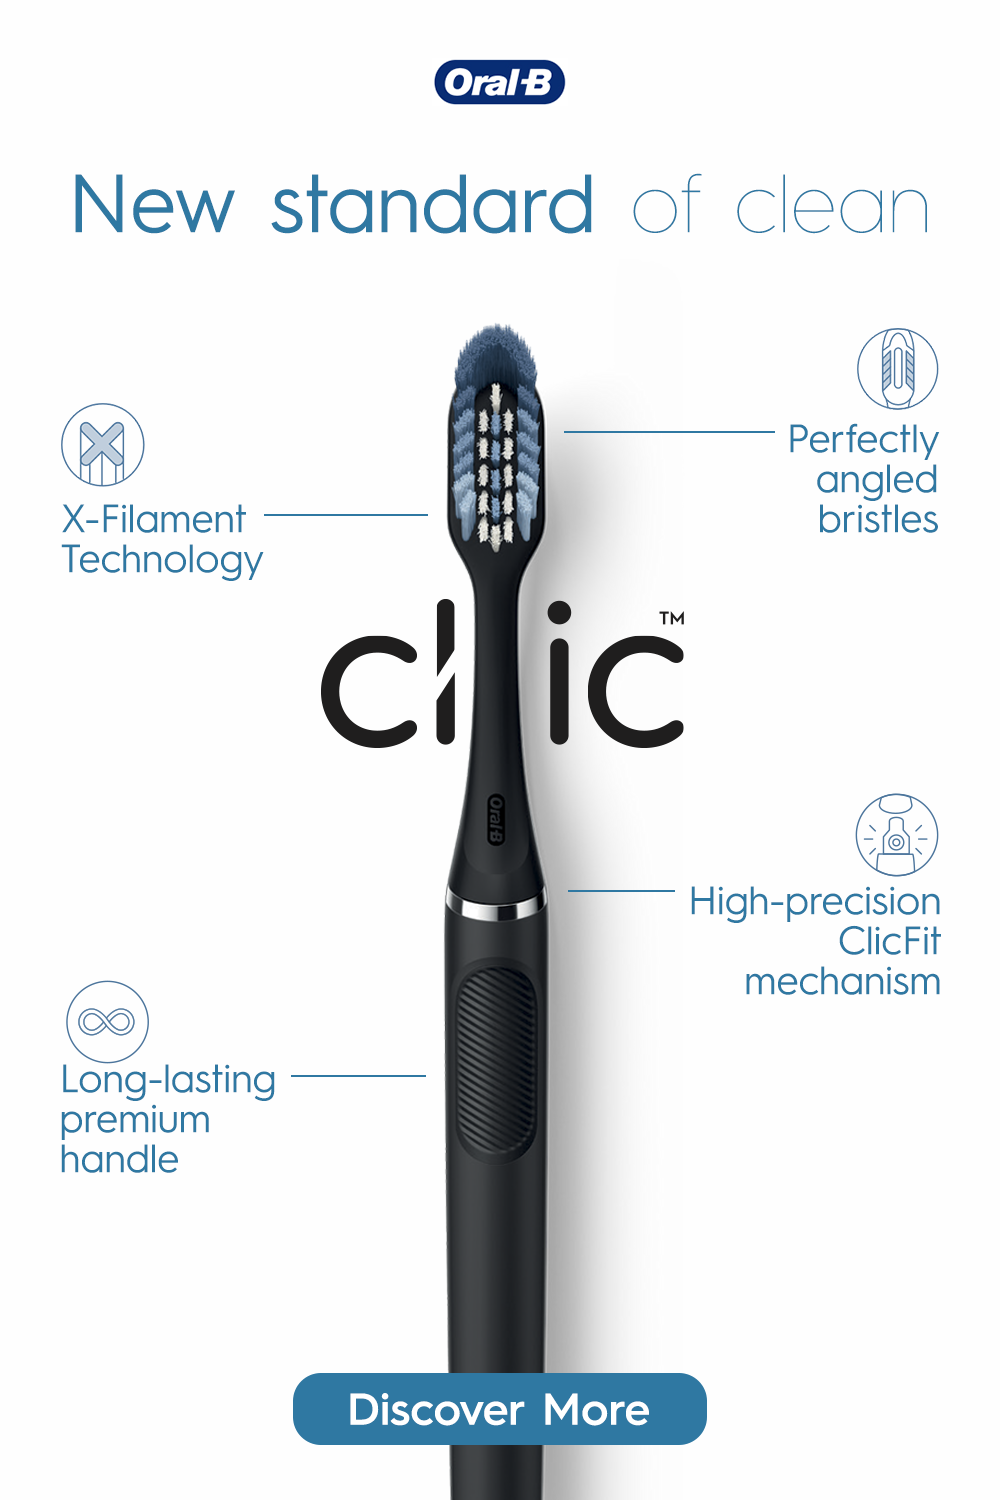 New Oral B Clic Features A Replaceable Brush Head In 2020 Brushing Teeth Oral B Manual Toothbrush